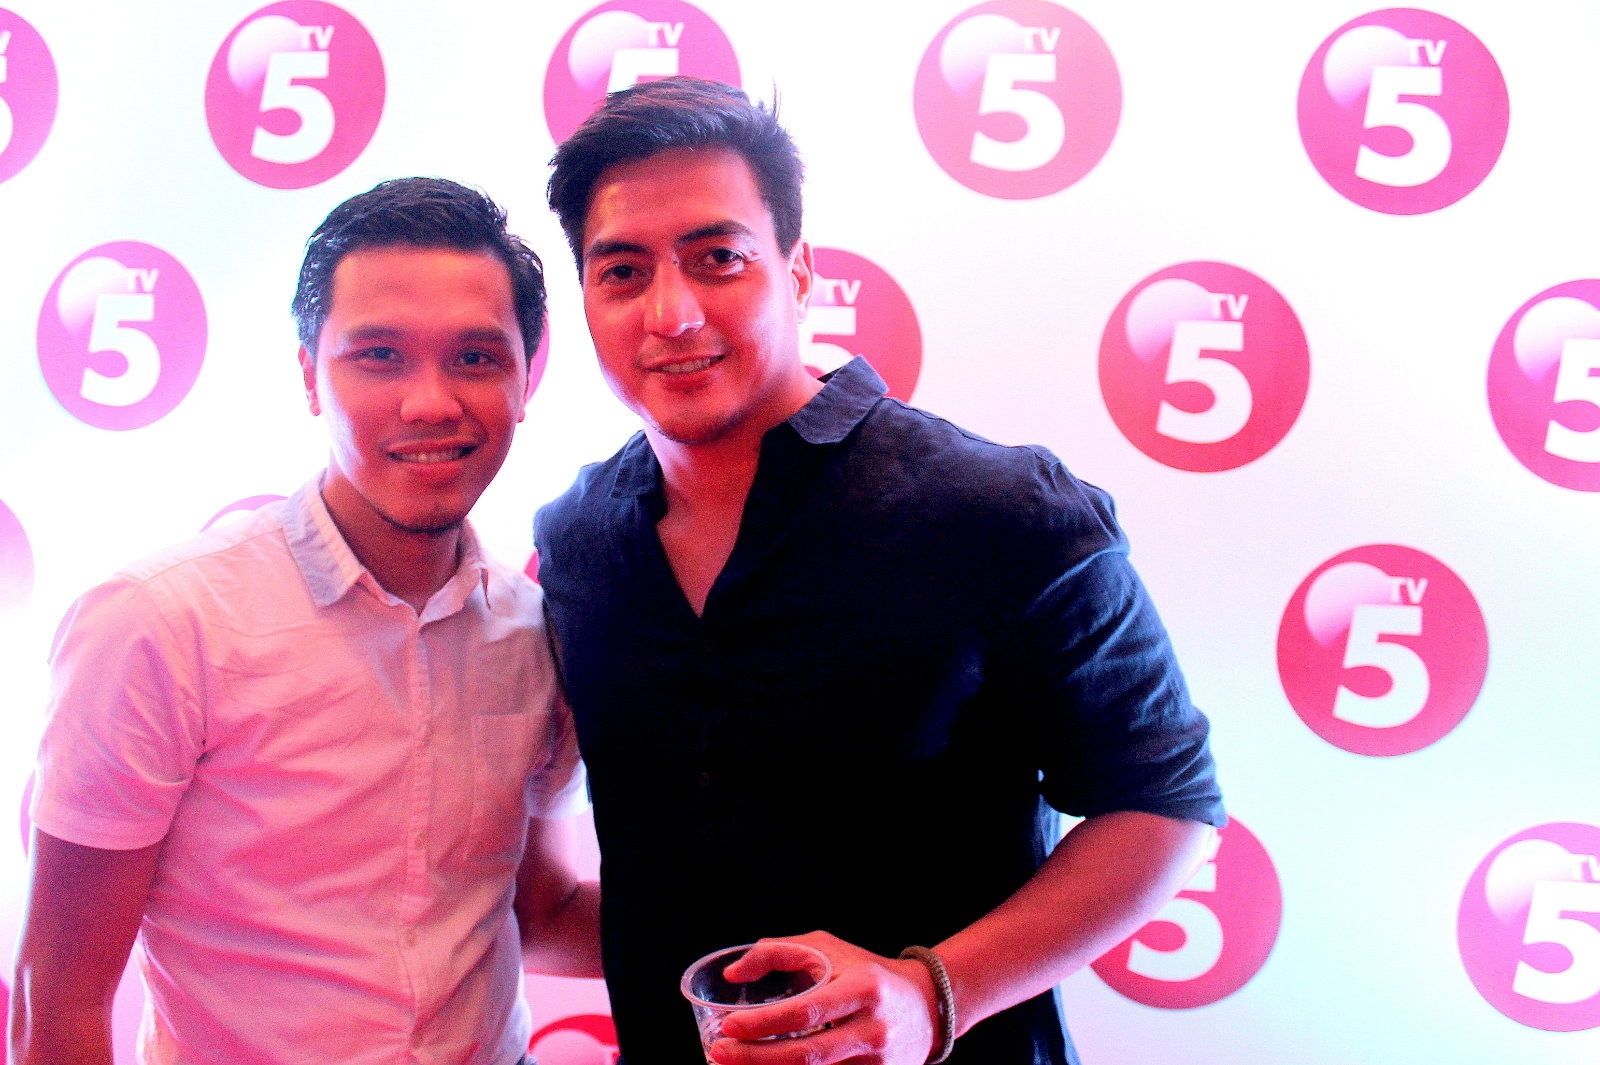 The Lifestyle Hub: TV5 beefs up primetime with new shows